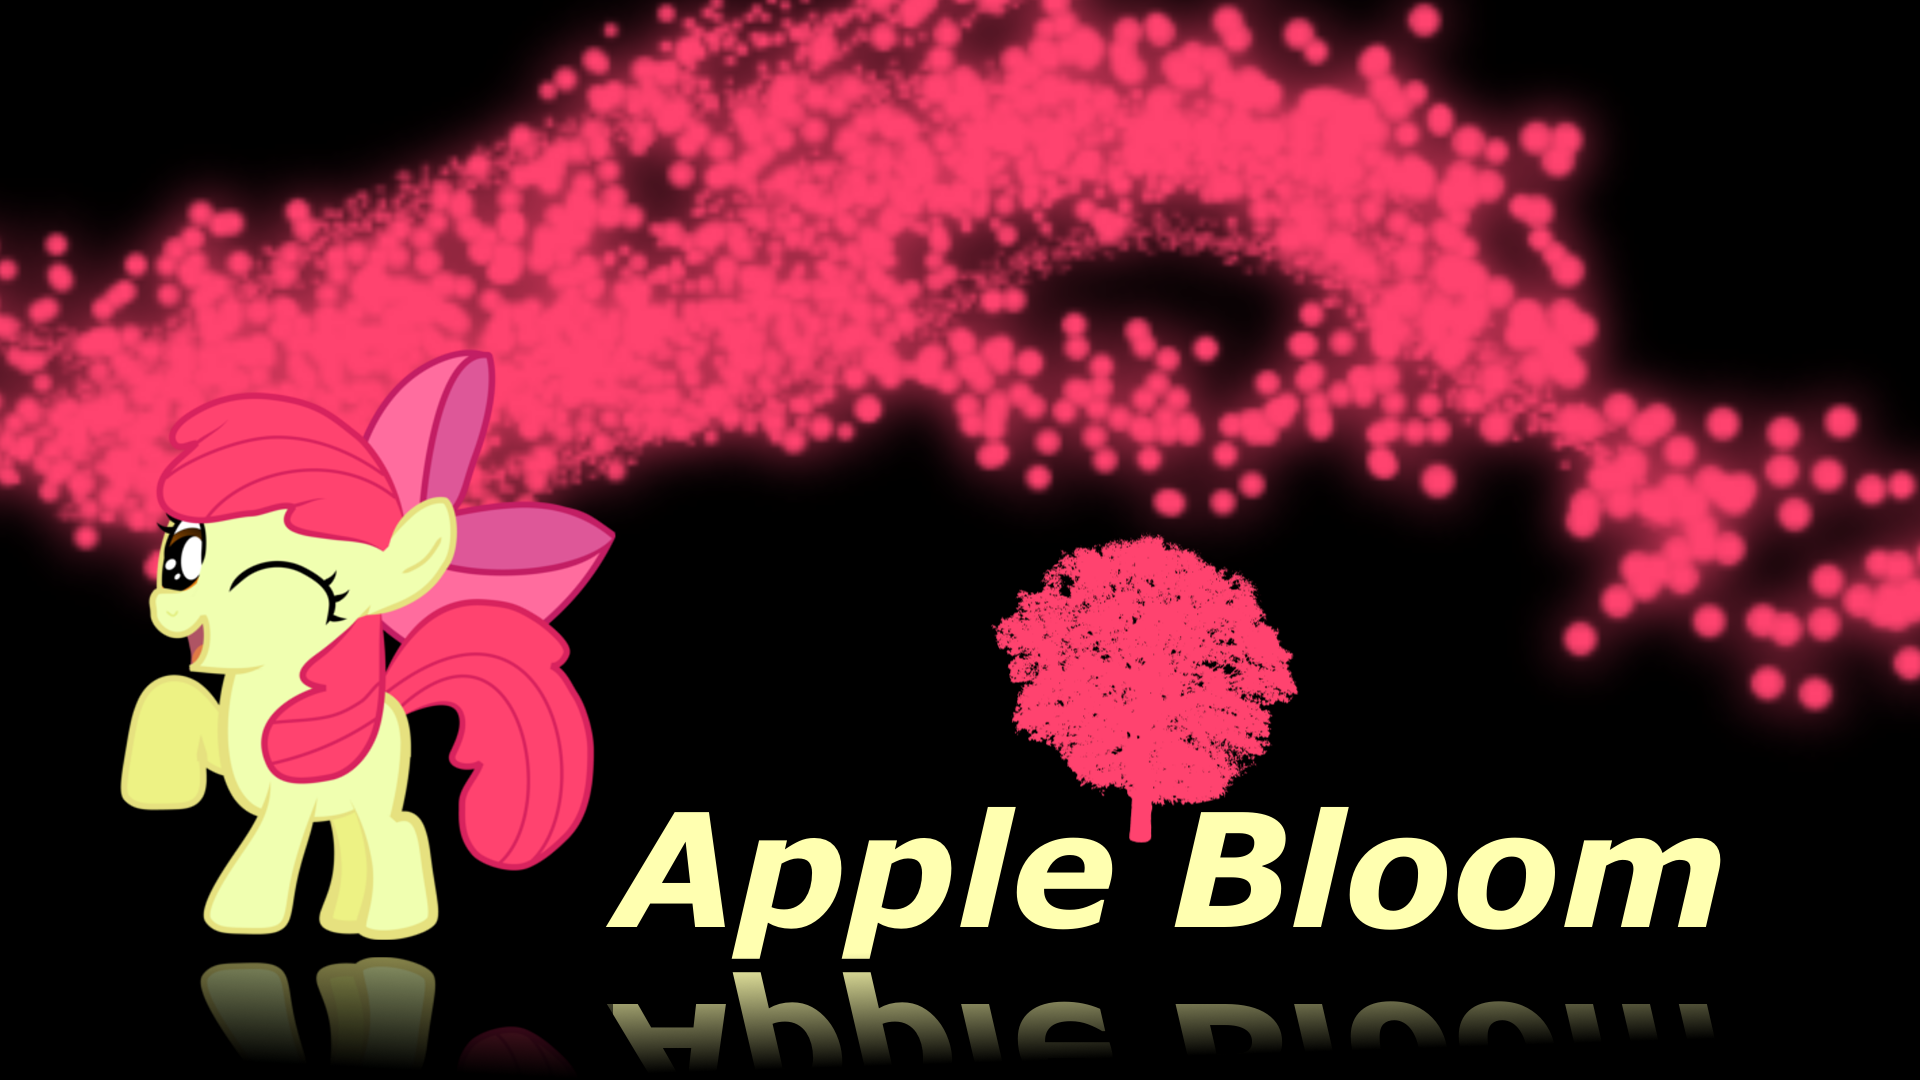 Apple Bloom Wallpaper by XVanilla TwilightX on deviantART 1920x1080